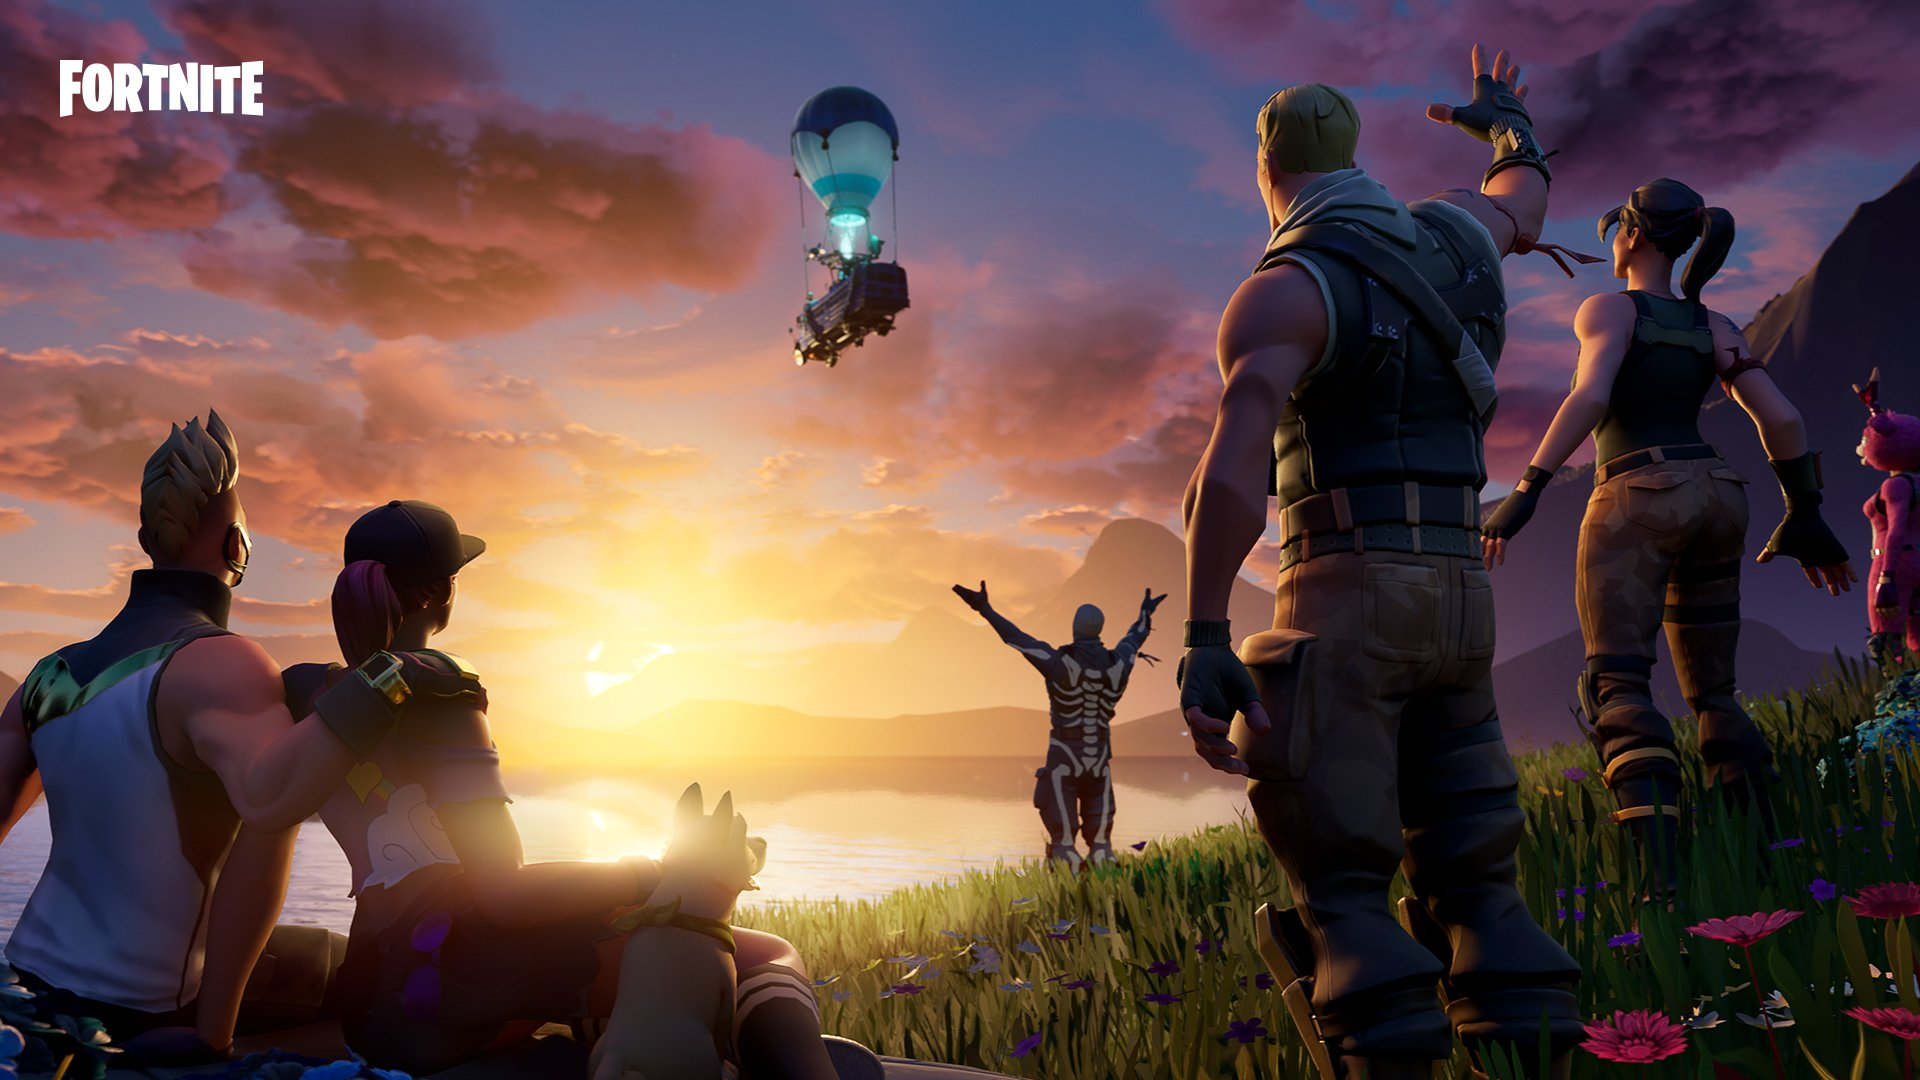 faze jarvis banned from fortnite